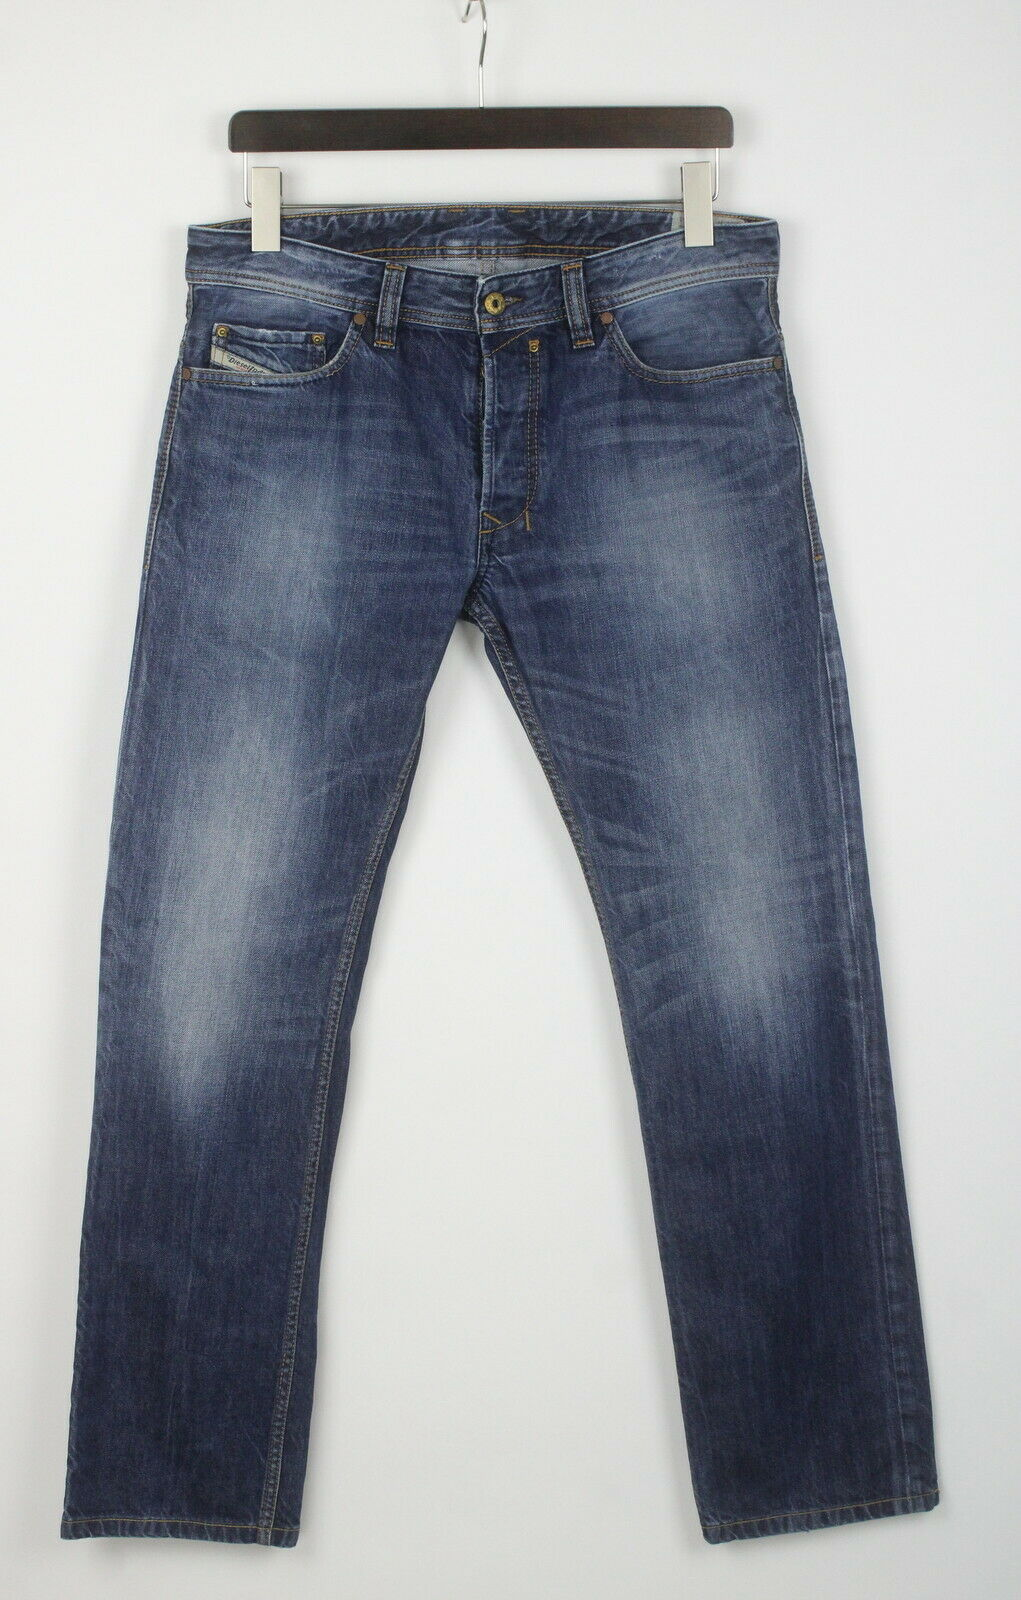 Diesel safado regular slim straight 0817f homme w31 l31 rigide jean 24183-js